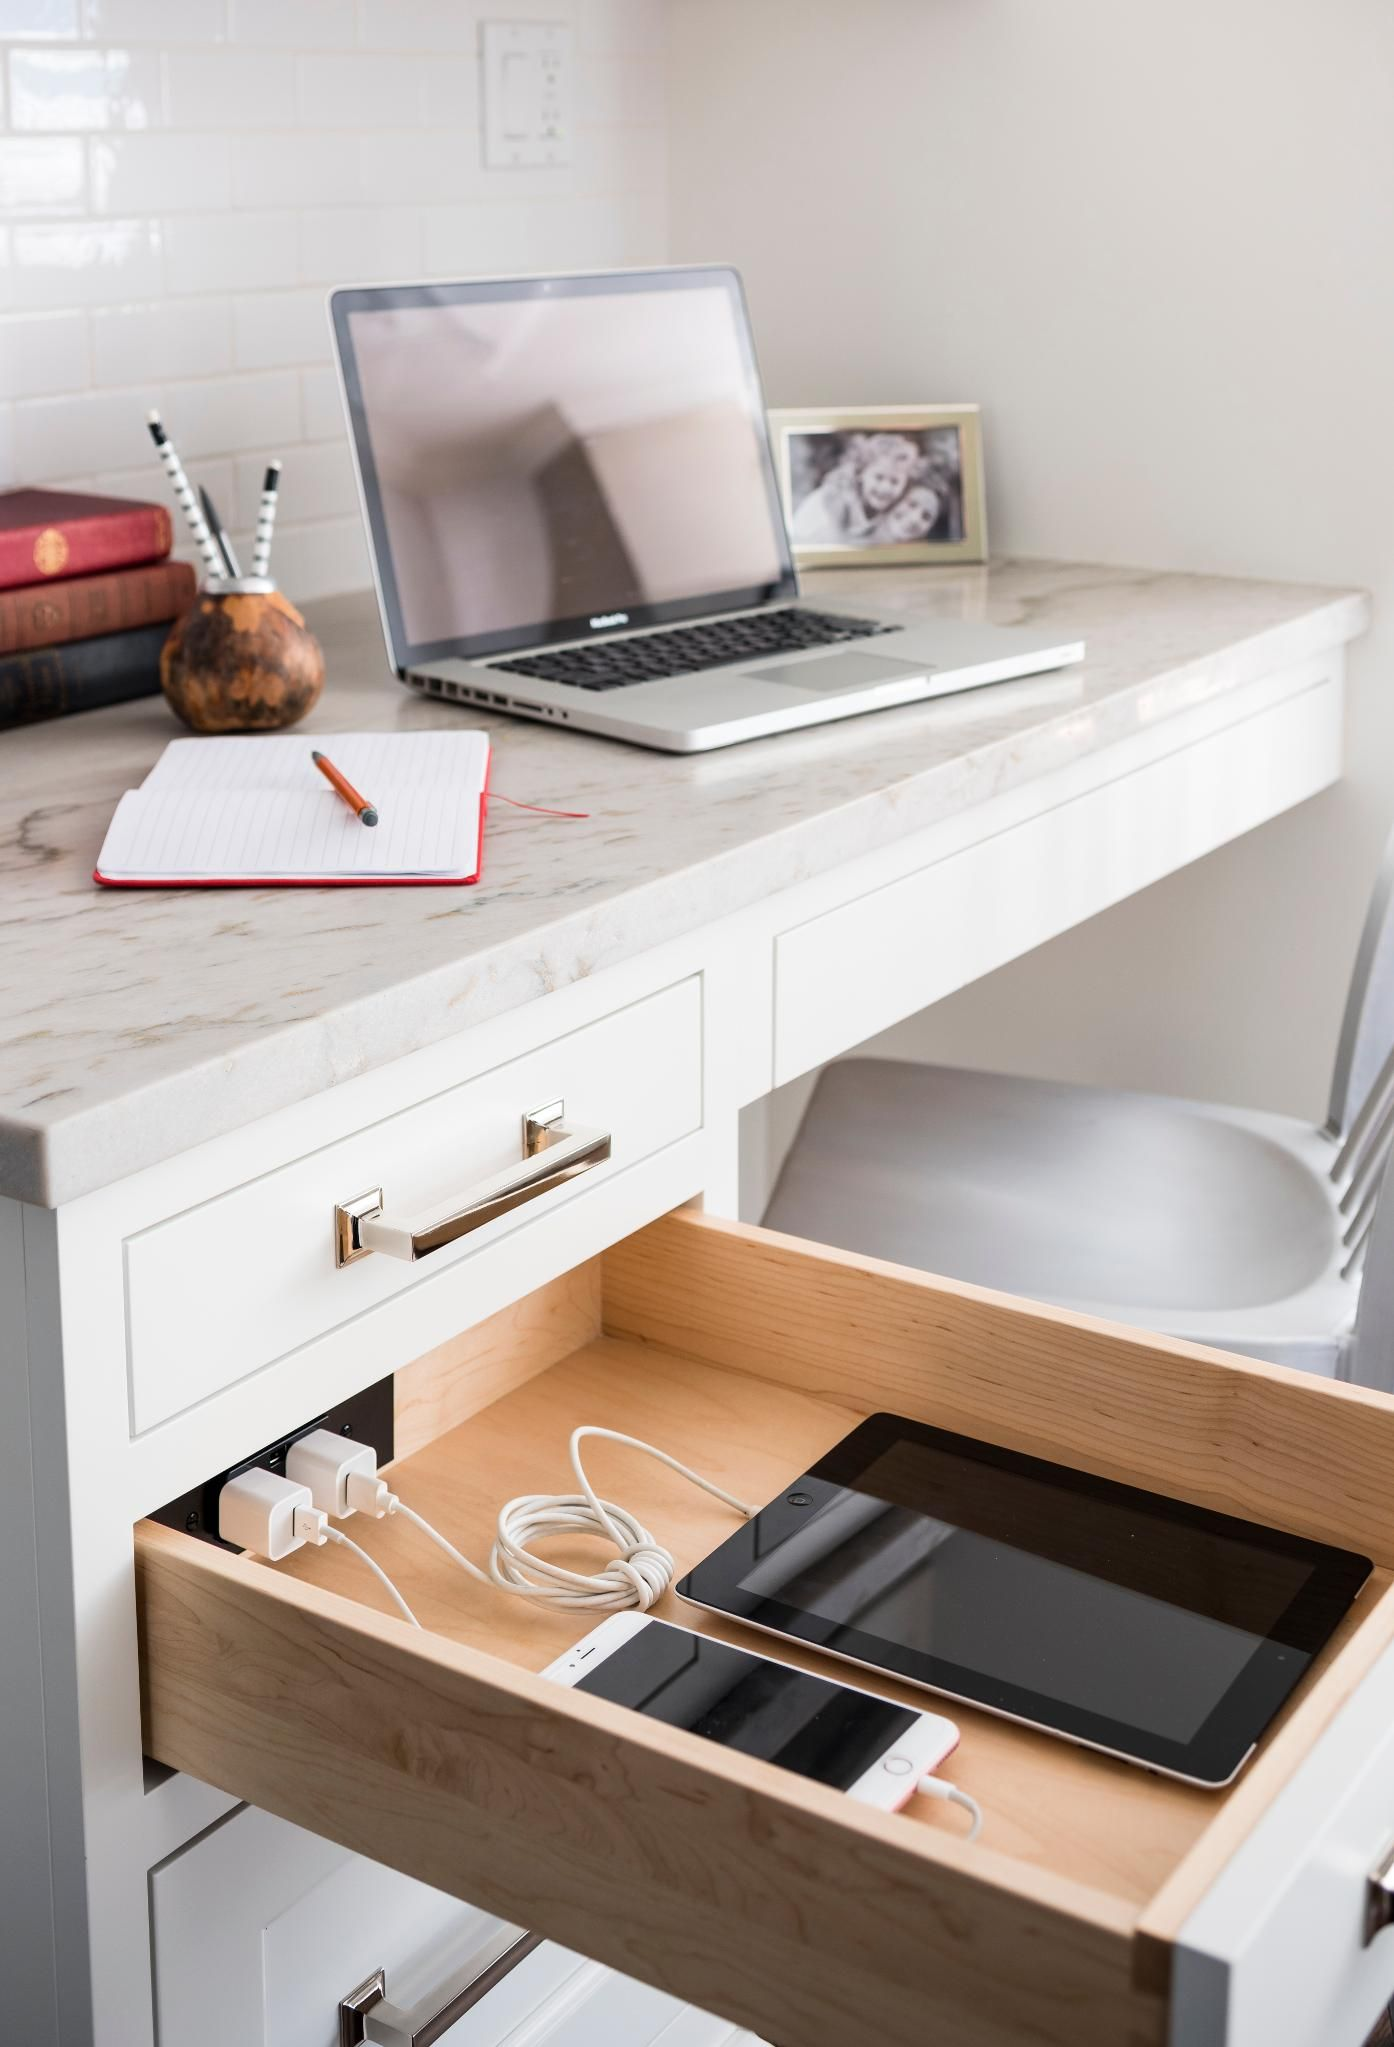 Home Office With Docking Drawer In Drawer Charging Outlets Sponsored Prostranstva Interer Kvartira